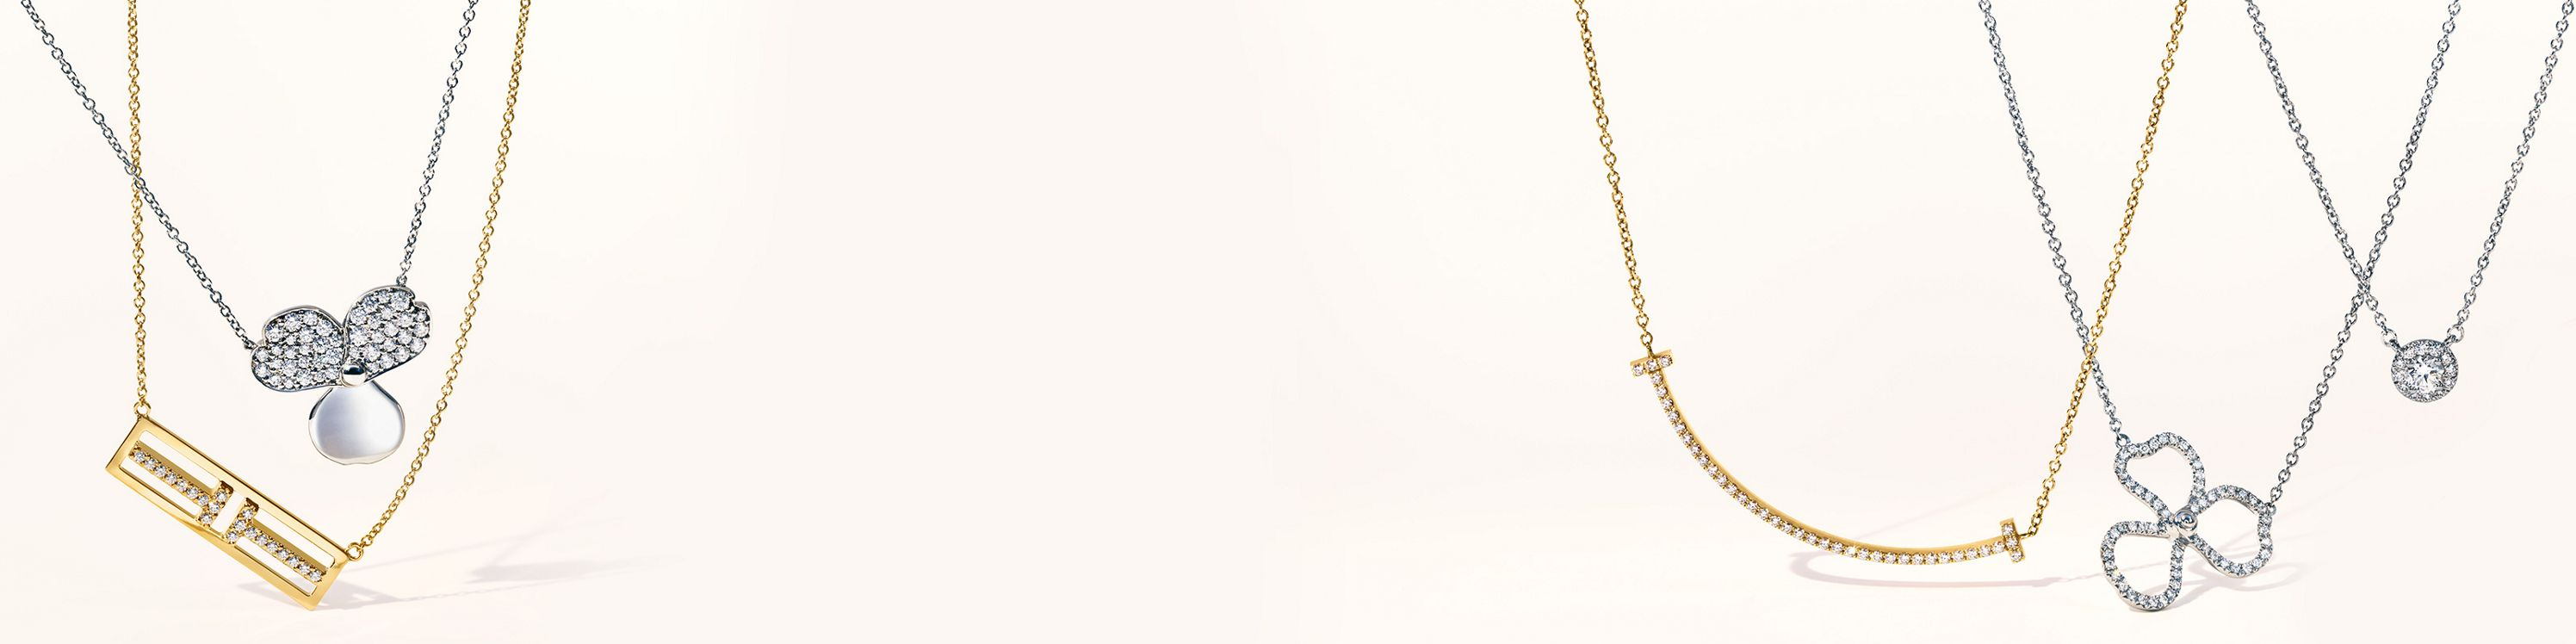 cf6575d56 Necklaces & Pendants | Tiffany & Co.